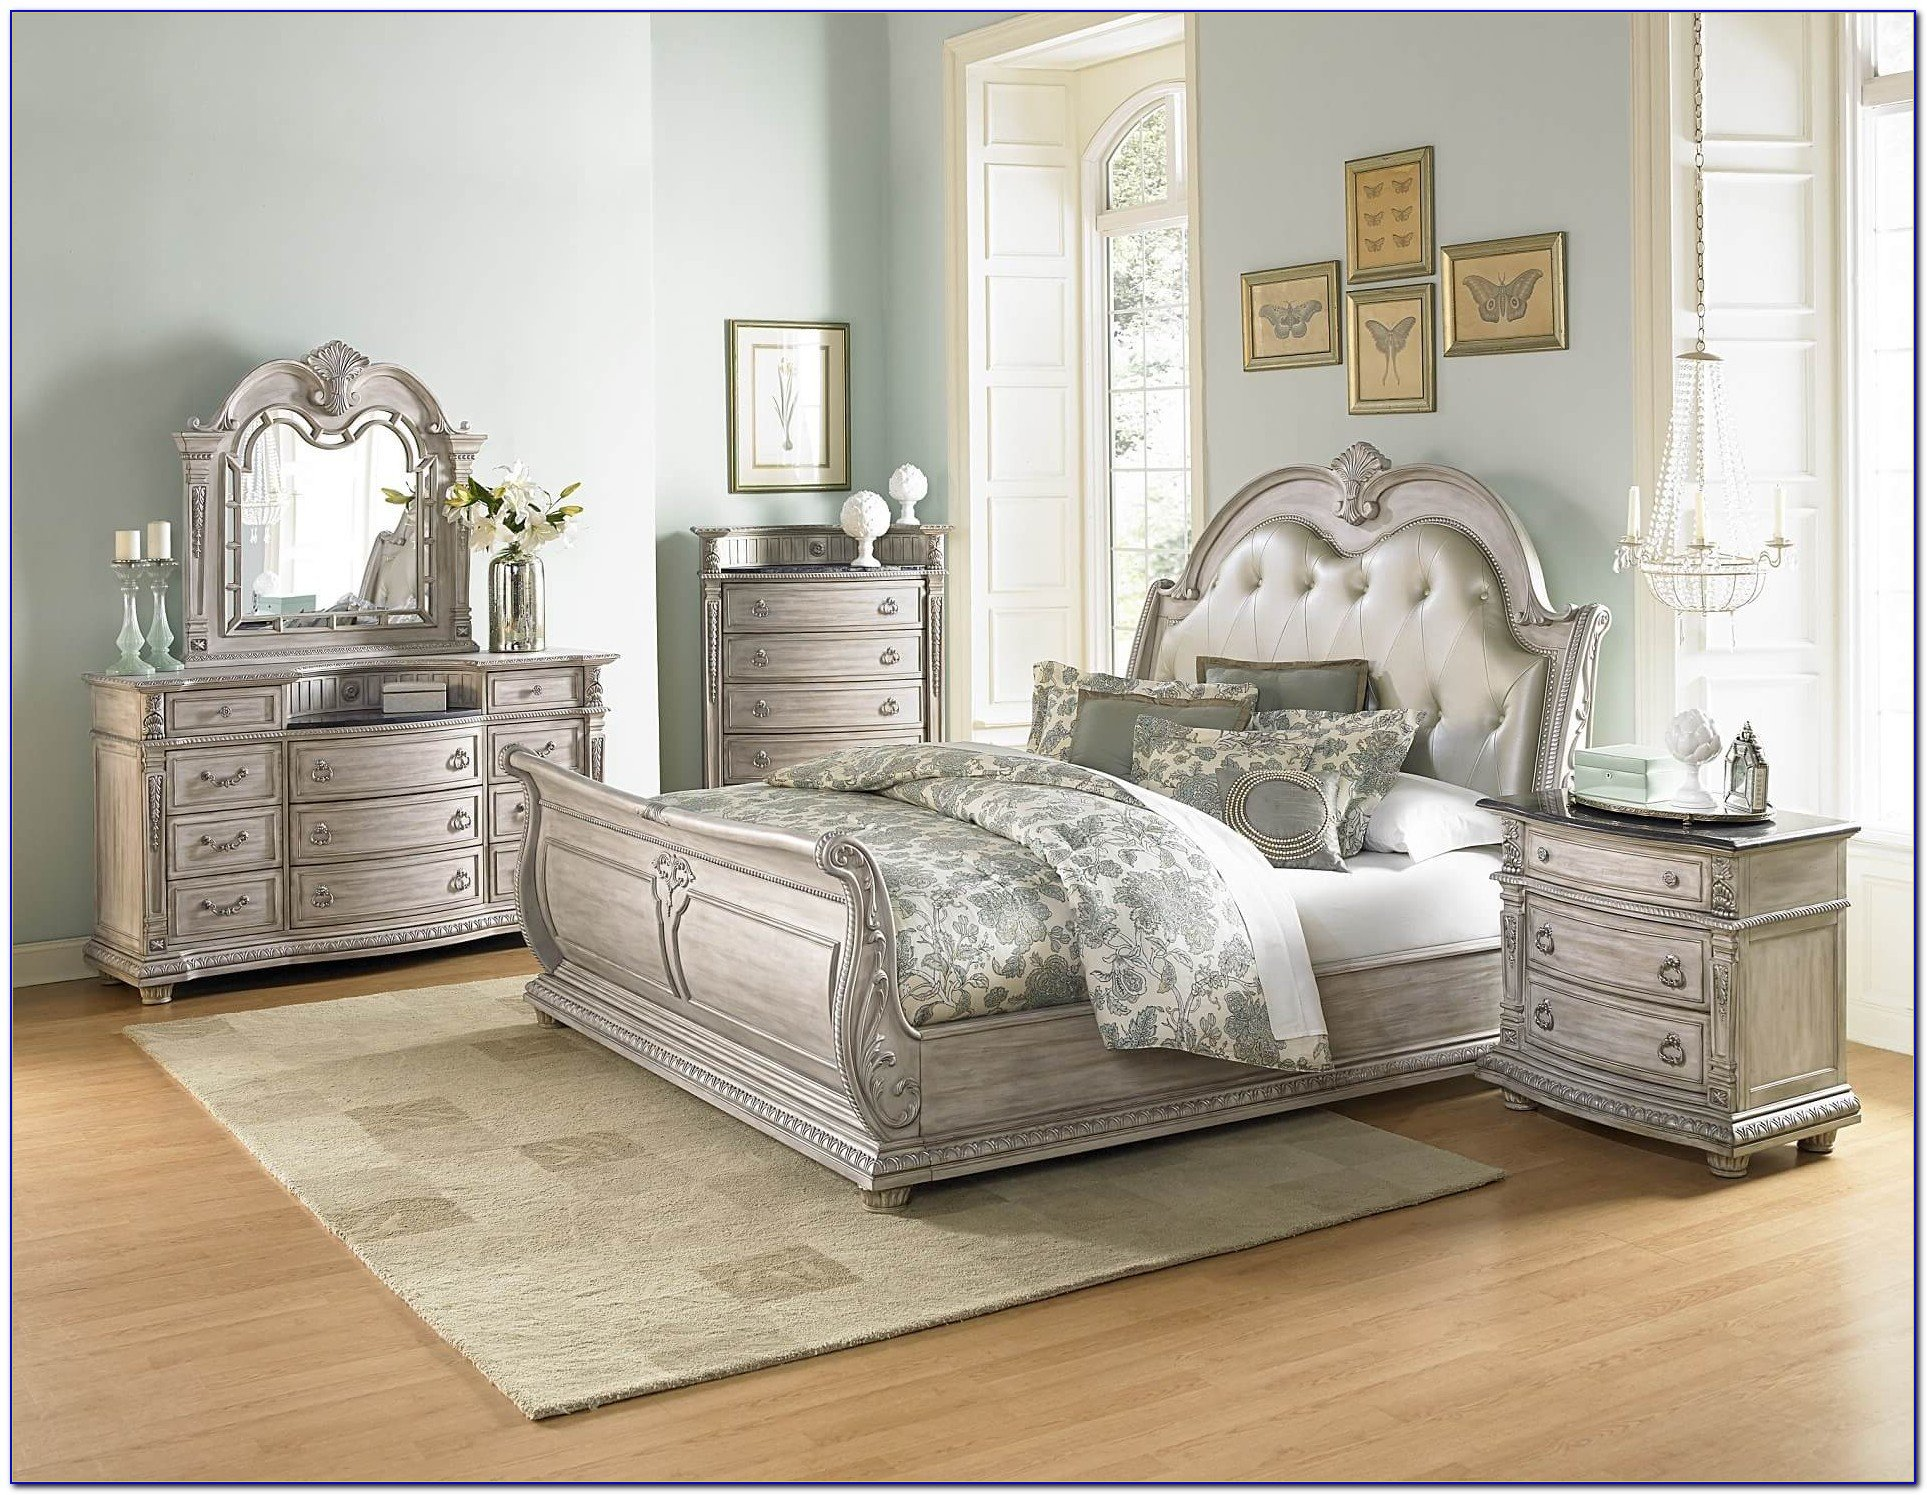 White Washed Bedroom Furniture Set Awesome White Washed Bedroom Furniture Nz Home Design Ideas